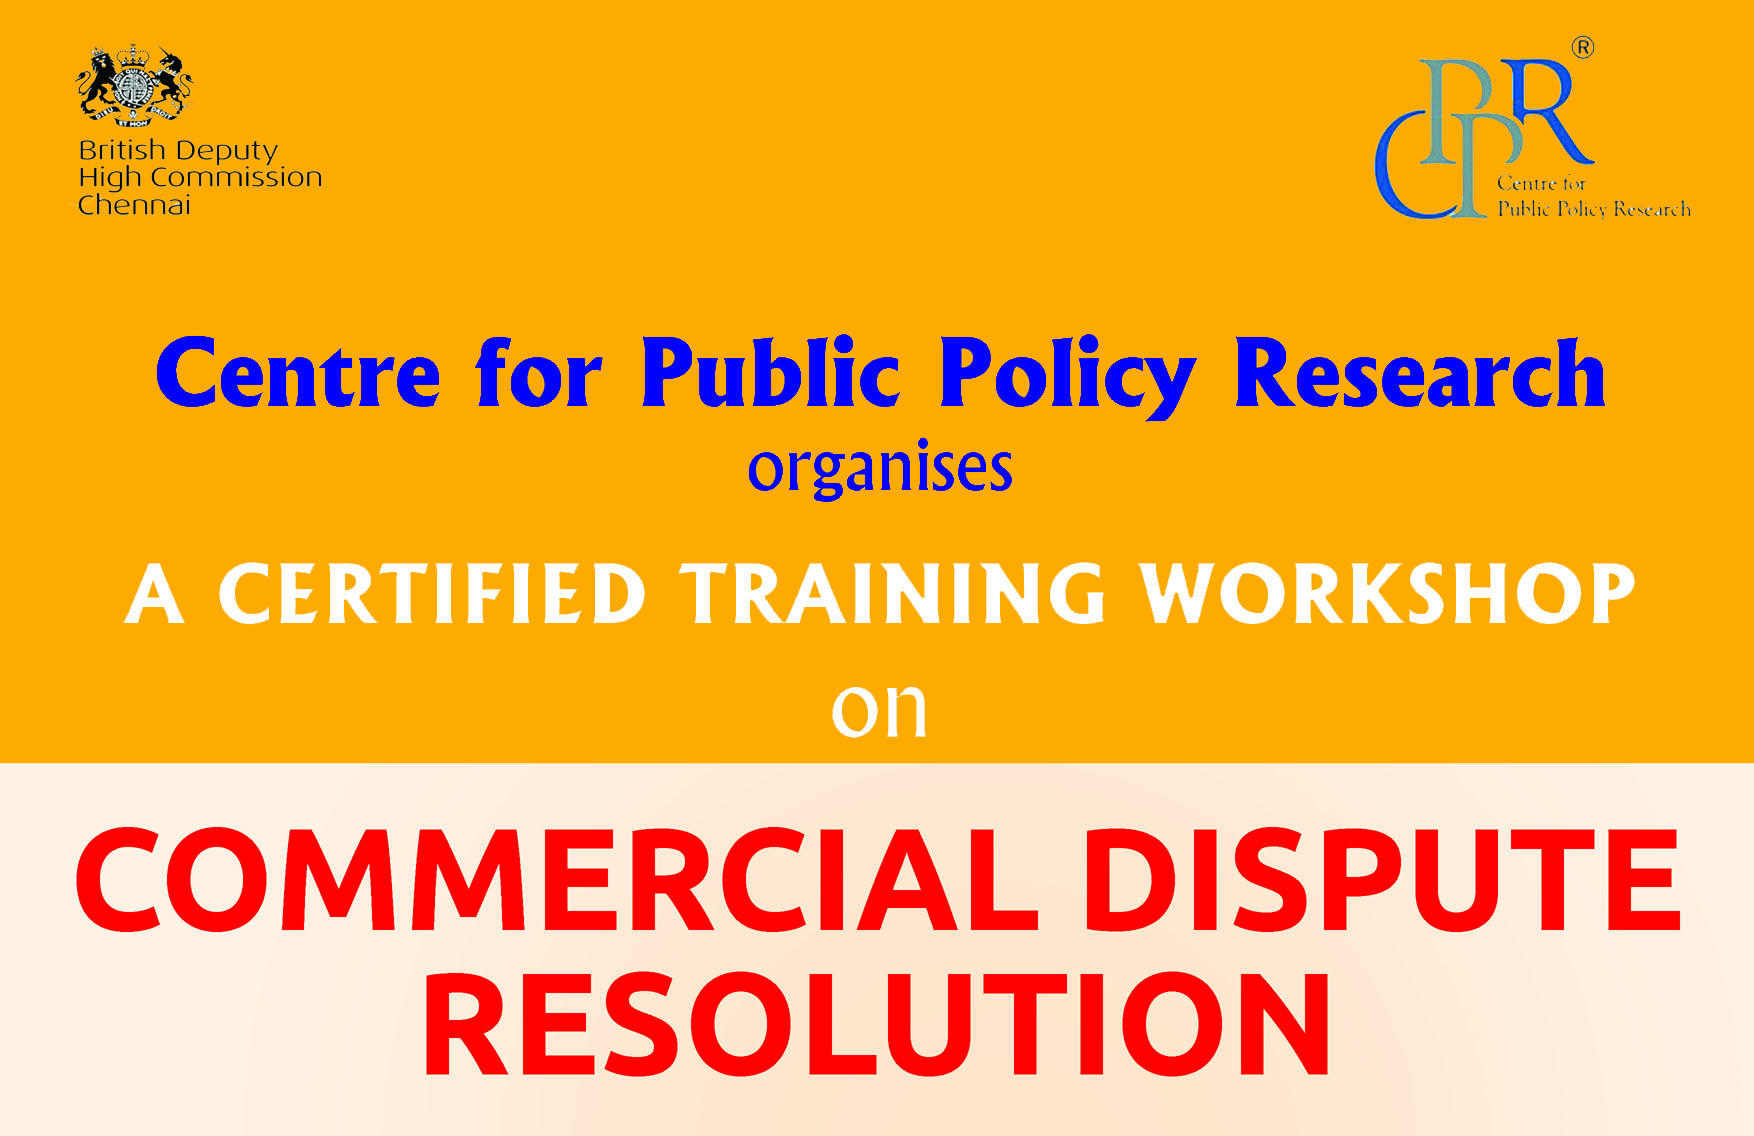 cdr-poster-slider - Centre for Public Policy Research (CPPR)